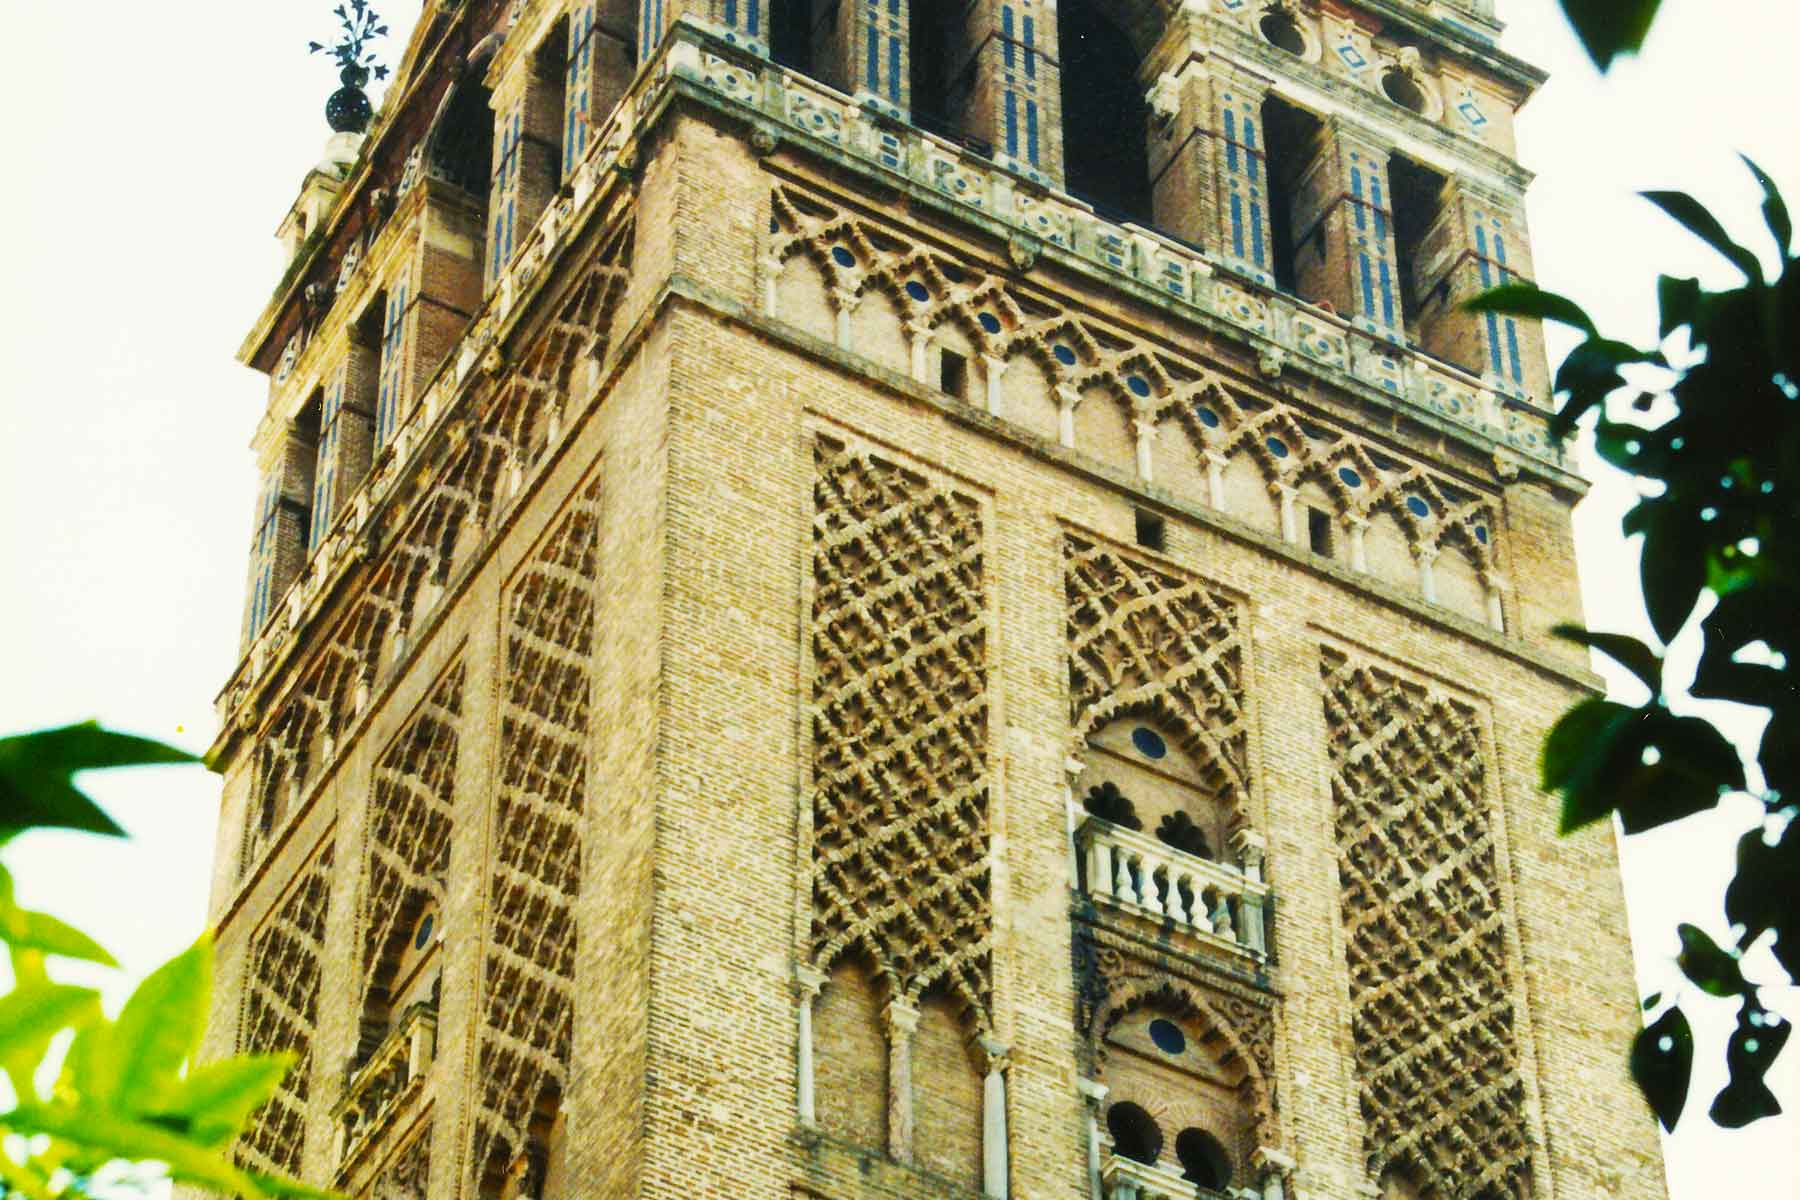 Giralda Bell Tower - Seville Cathedral - Spain Photo Journal - Steven Andrew Martin - 1998